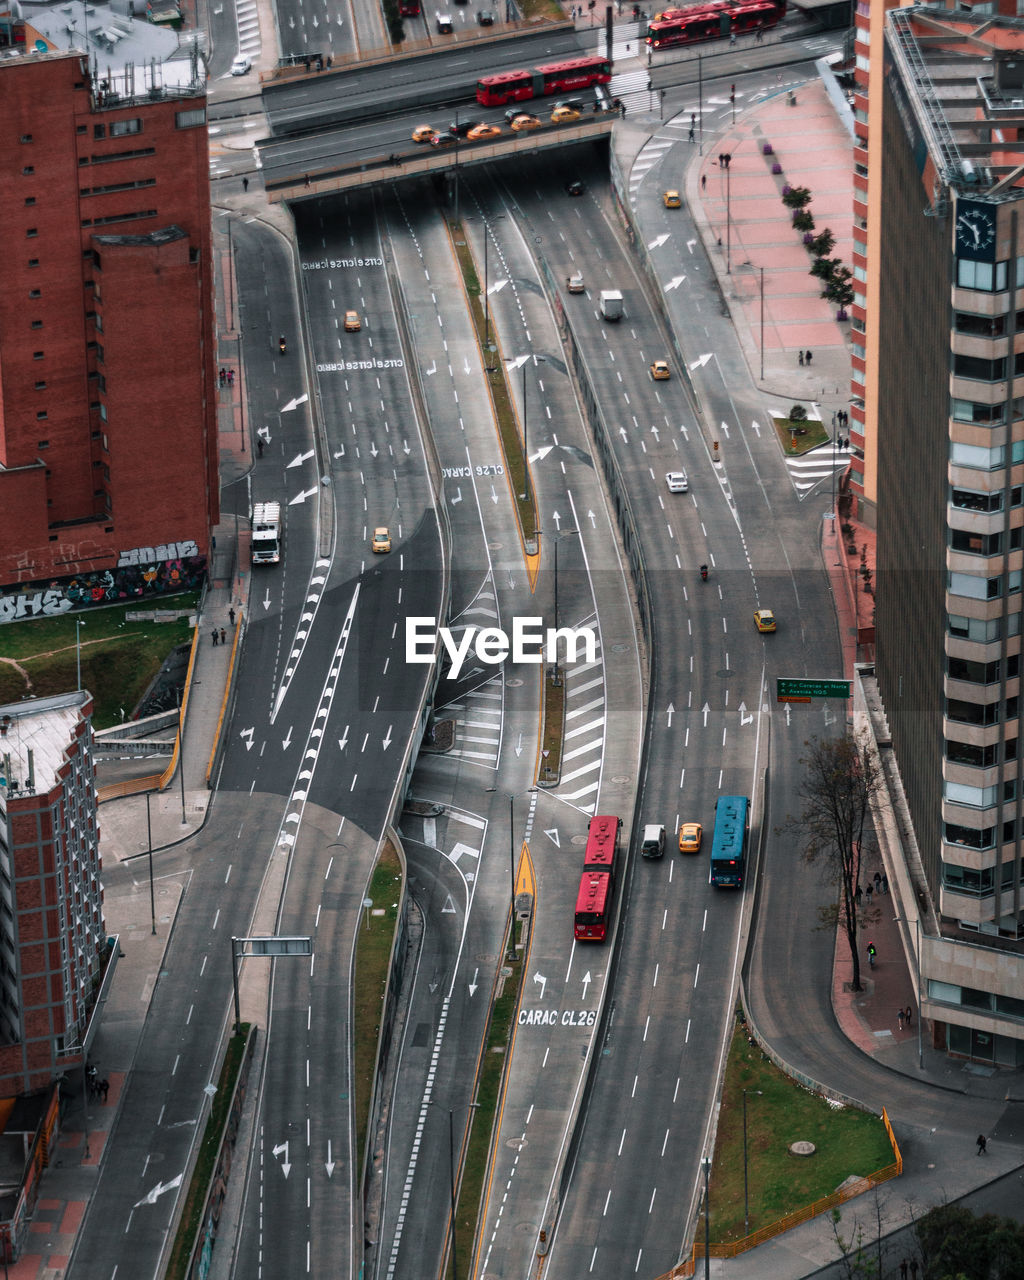 transportation, architecture, mode of transportation, high angle view, built structure, city, road, car, land vehicle, building exterior, motor vehicle, street, sign, traffic, motion, highway, no people, city street, marking, bridge, multiple lane highway, outdoors, cityscape